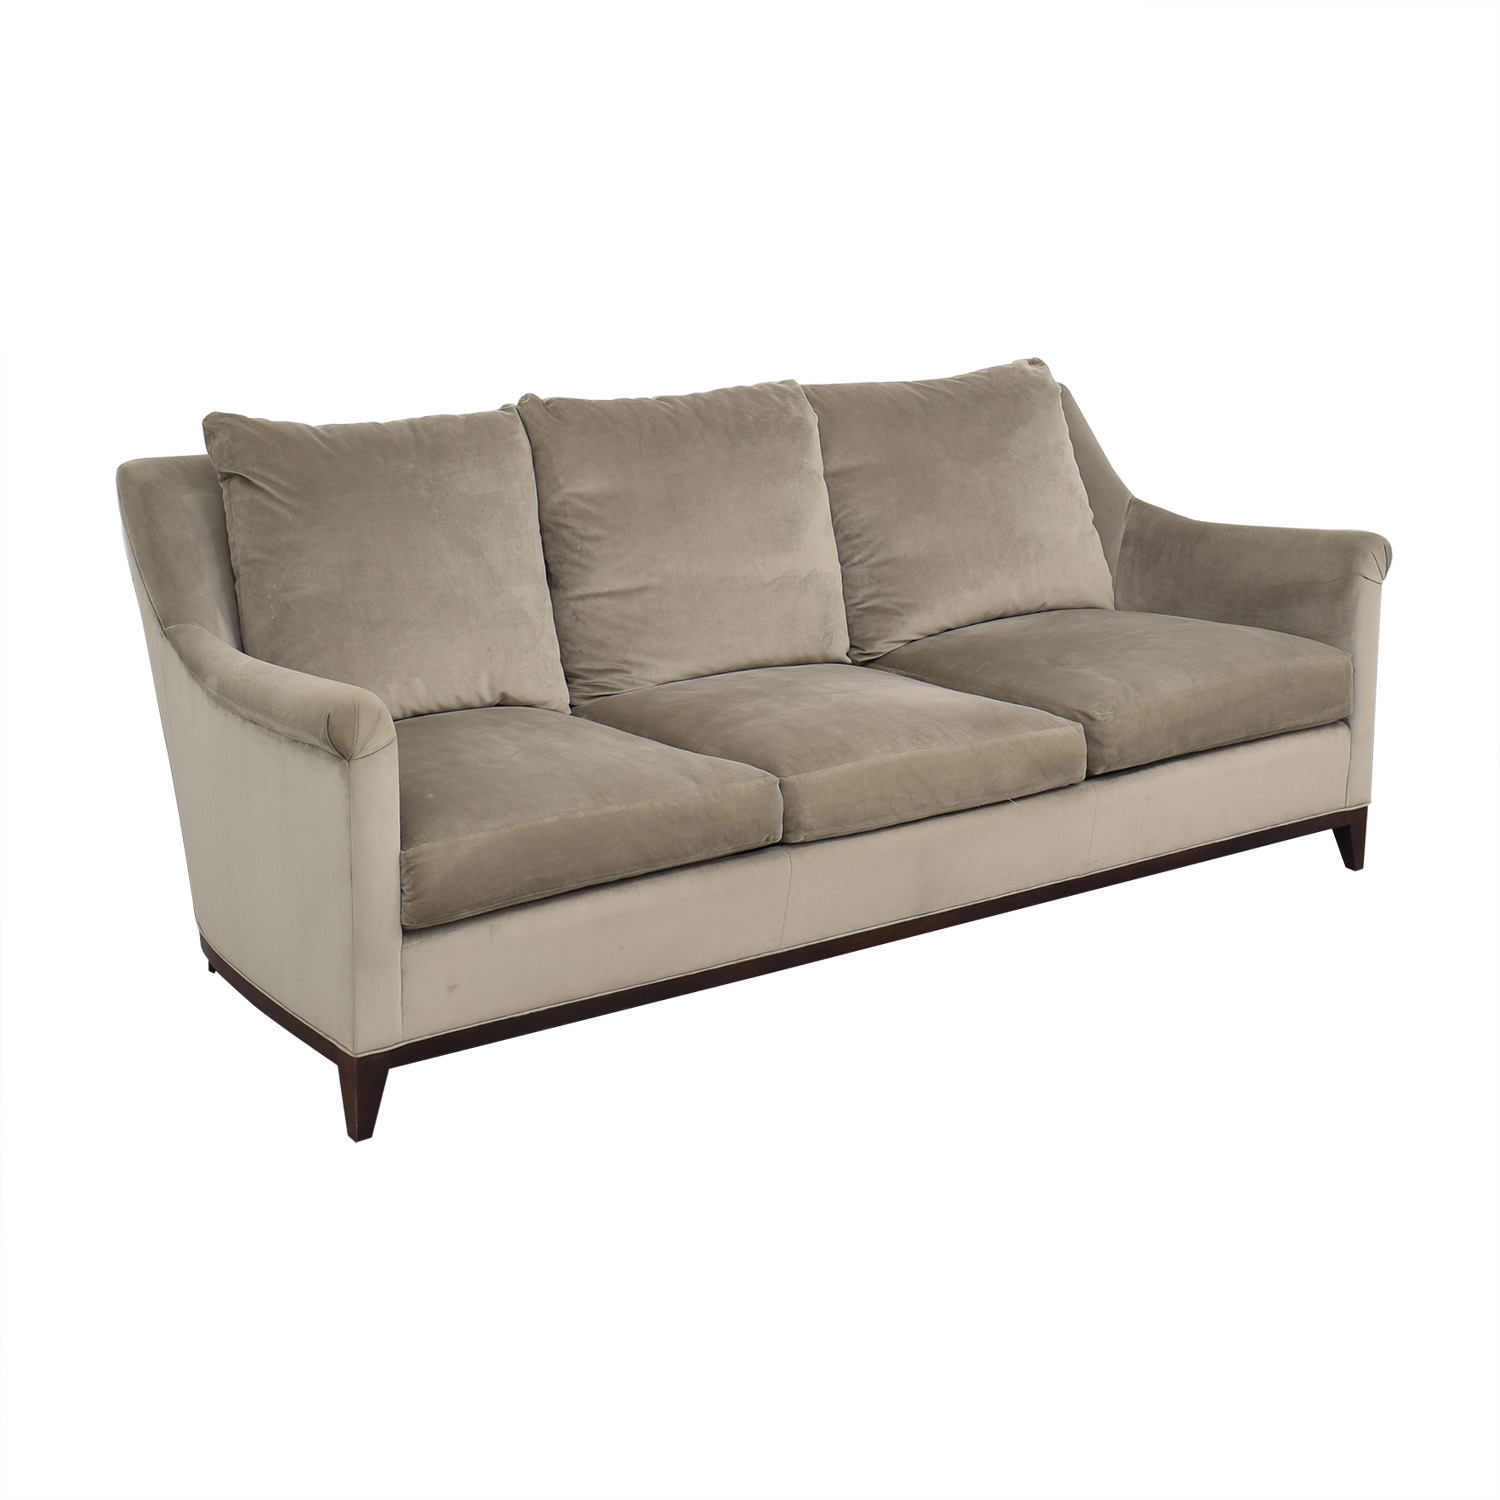 Safavieh Safavieh Roll Arm Velvet Sofa on sale